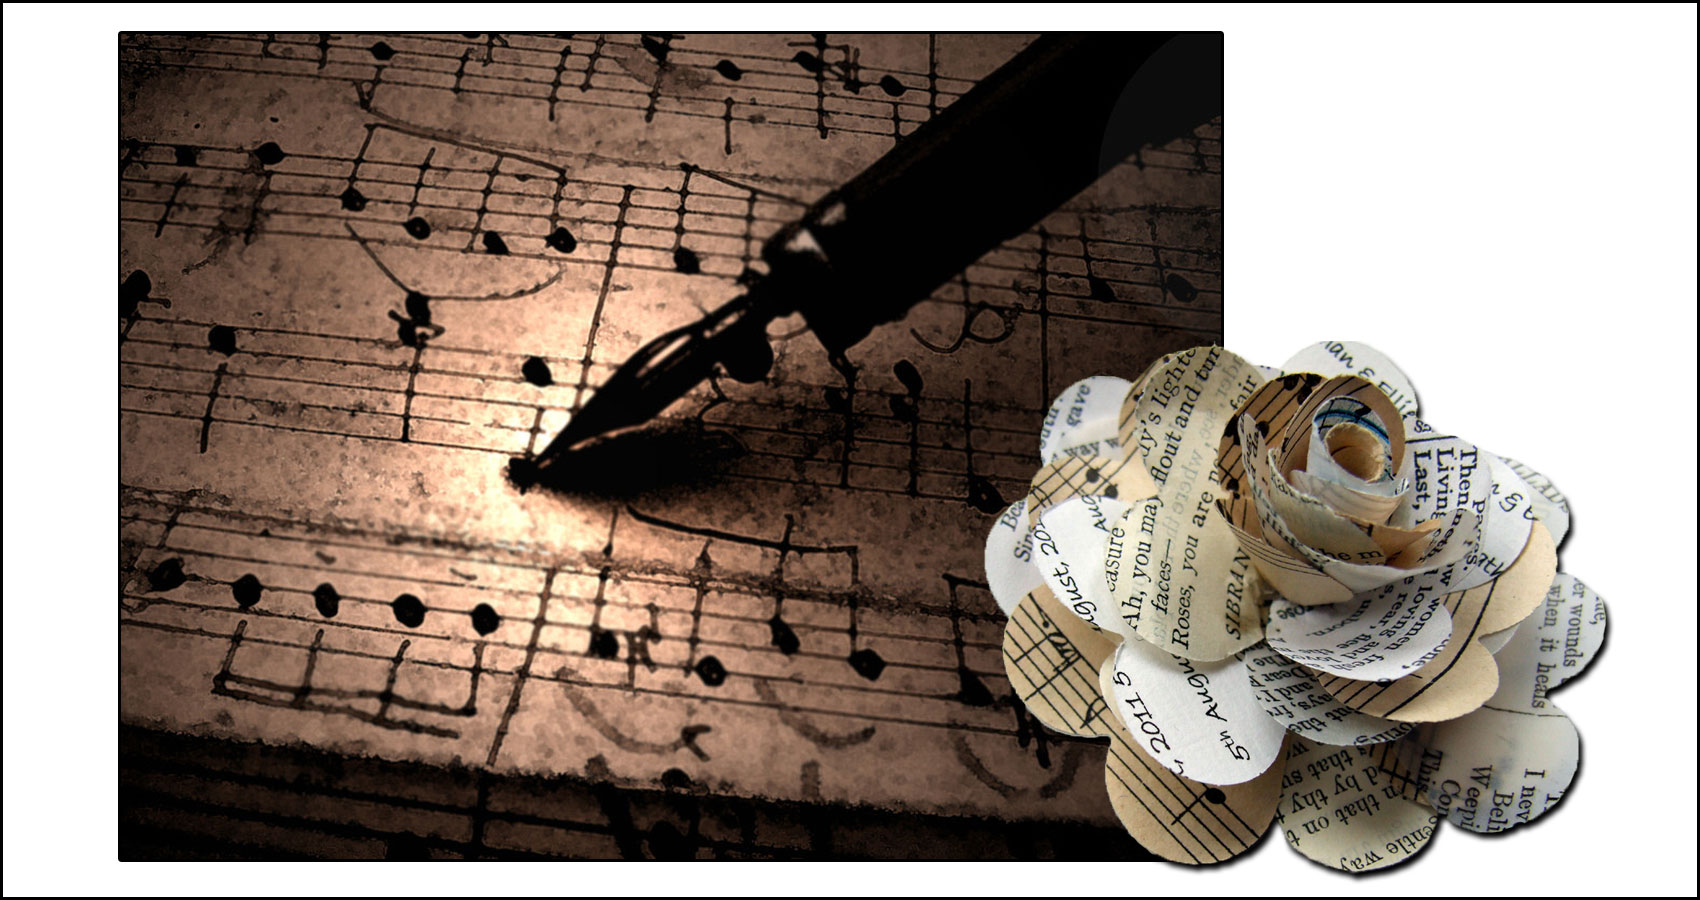 Poetry And Music Are More Closely Related Than We Think at Spillwords.com